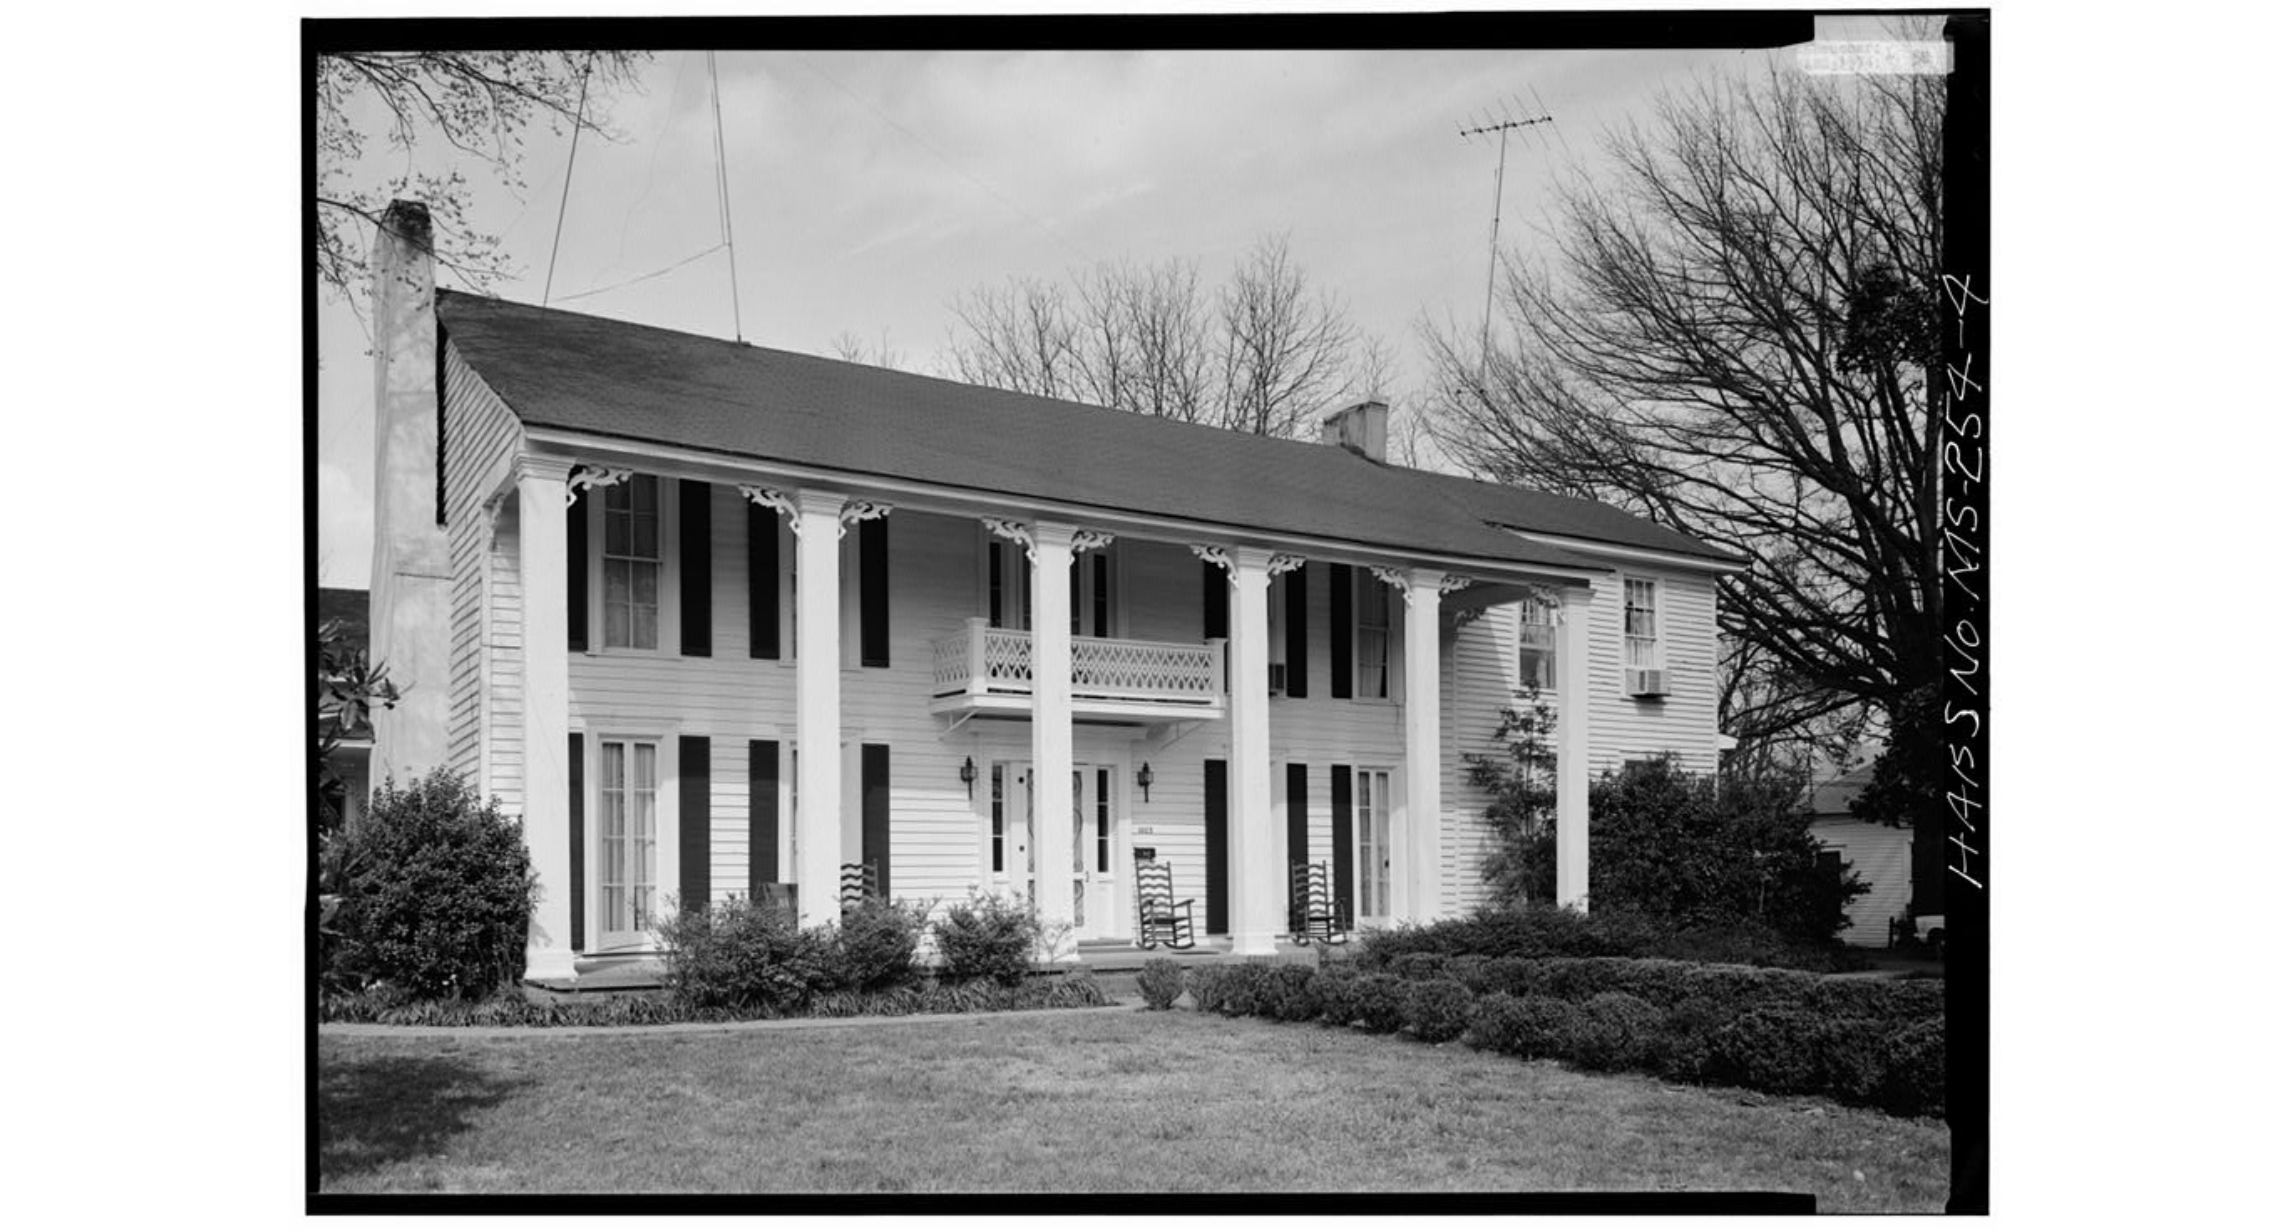 A picture of the house showing the two-story side addition